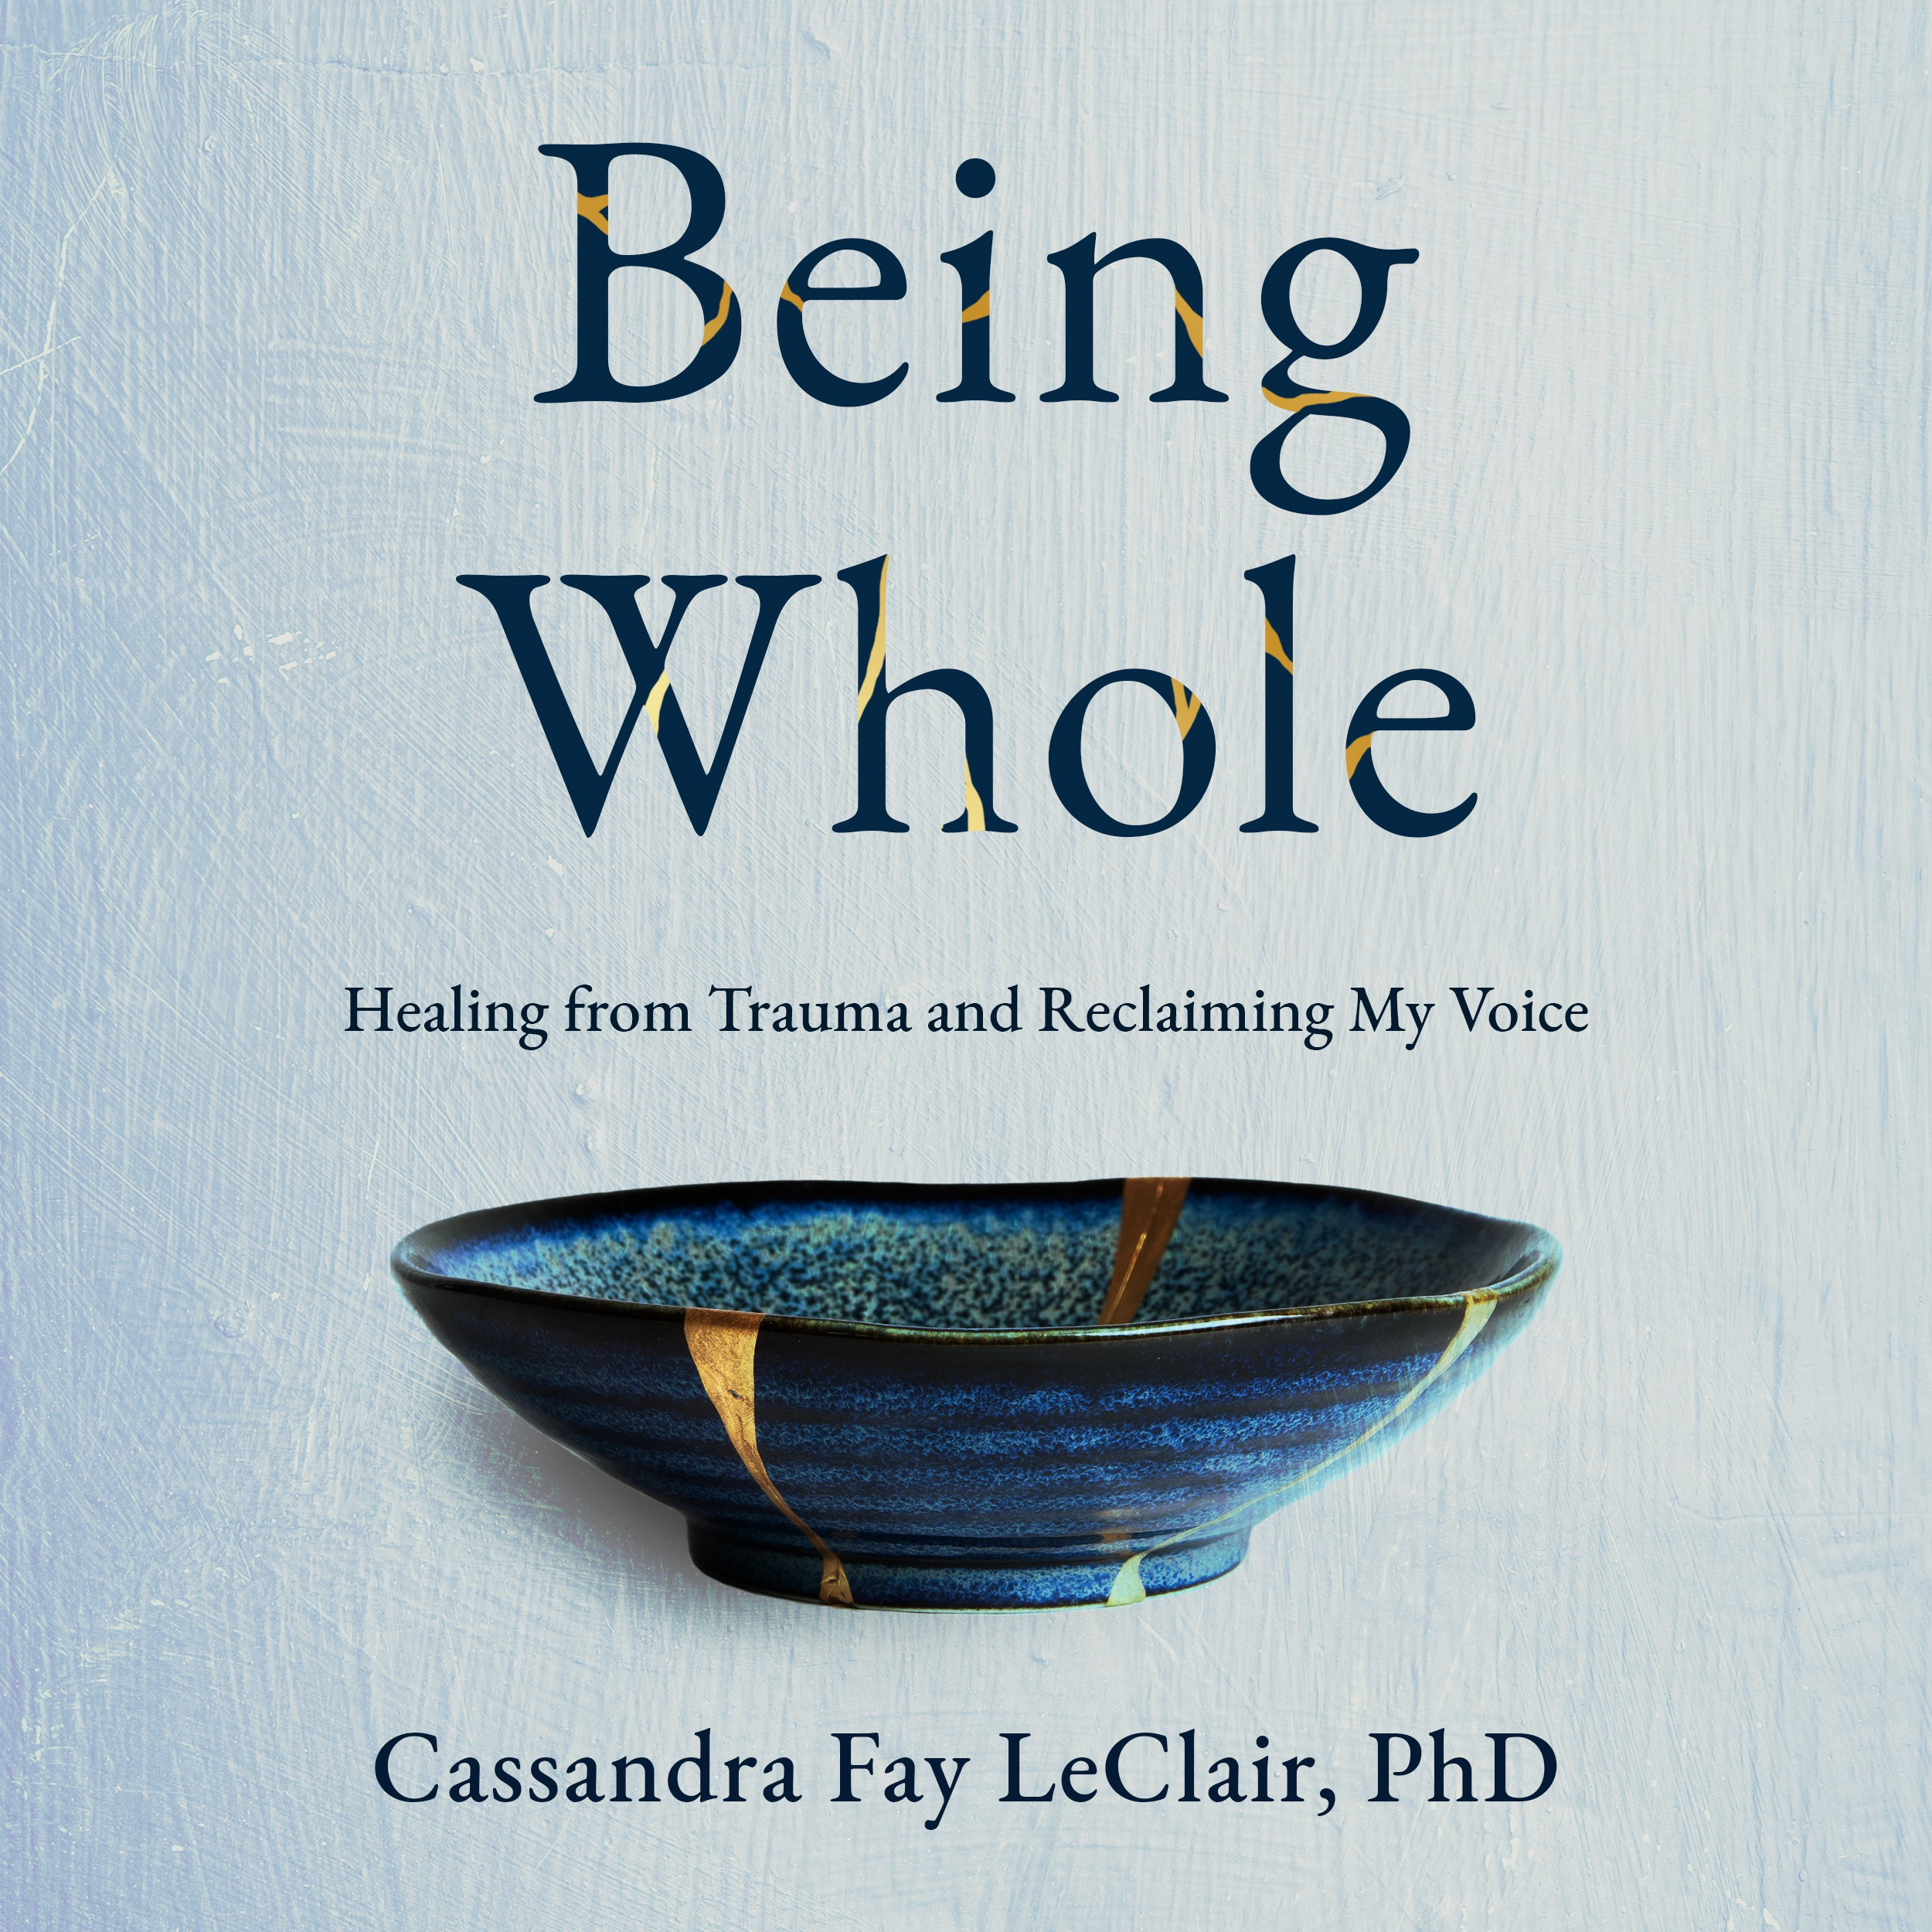 Being Whole Book Cover